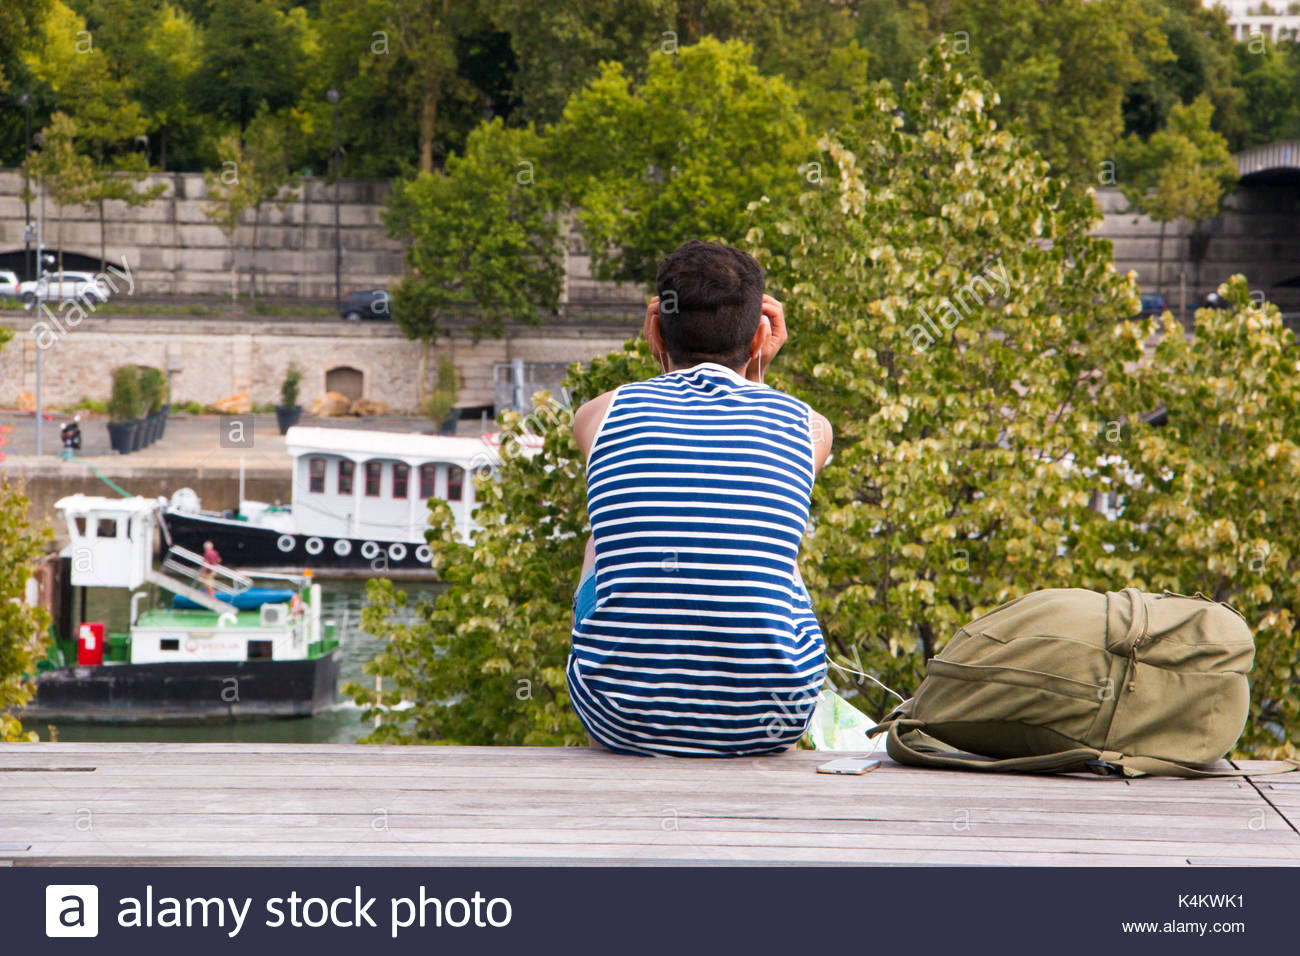 Paris (France), August 16, 2017. Young man with a marine t-shirt watching the boats on the Seine, in Paris. - Stock Image